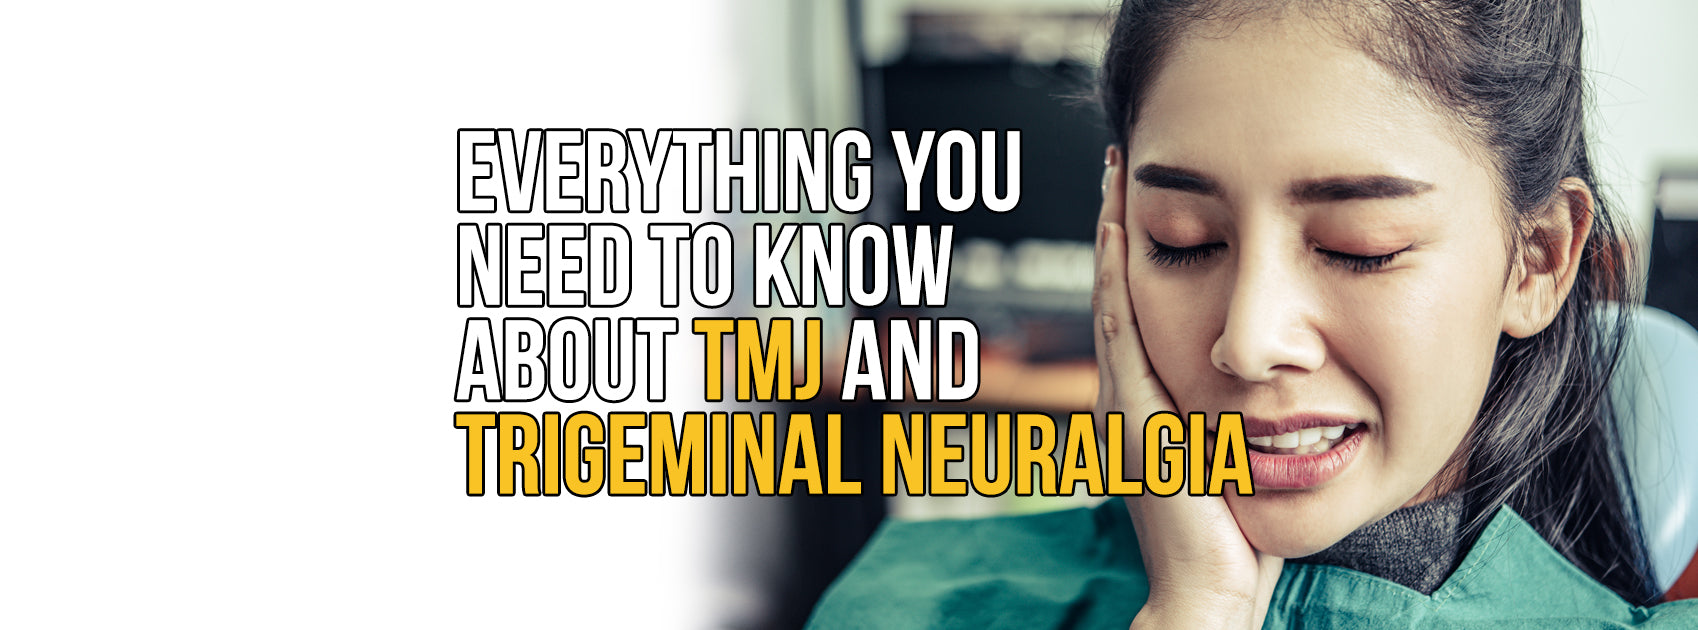 EVERYTHING YOU NEED TO KNOW ABOUT TMJ AND TRIGEMINAL NEURALGIA